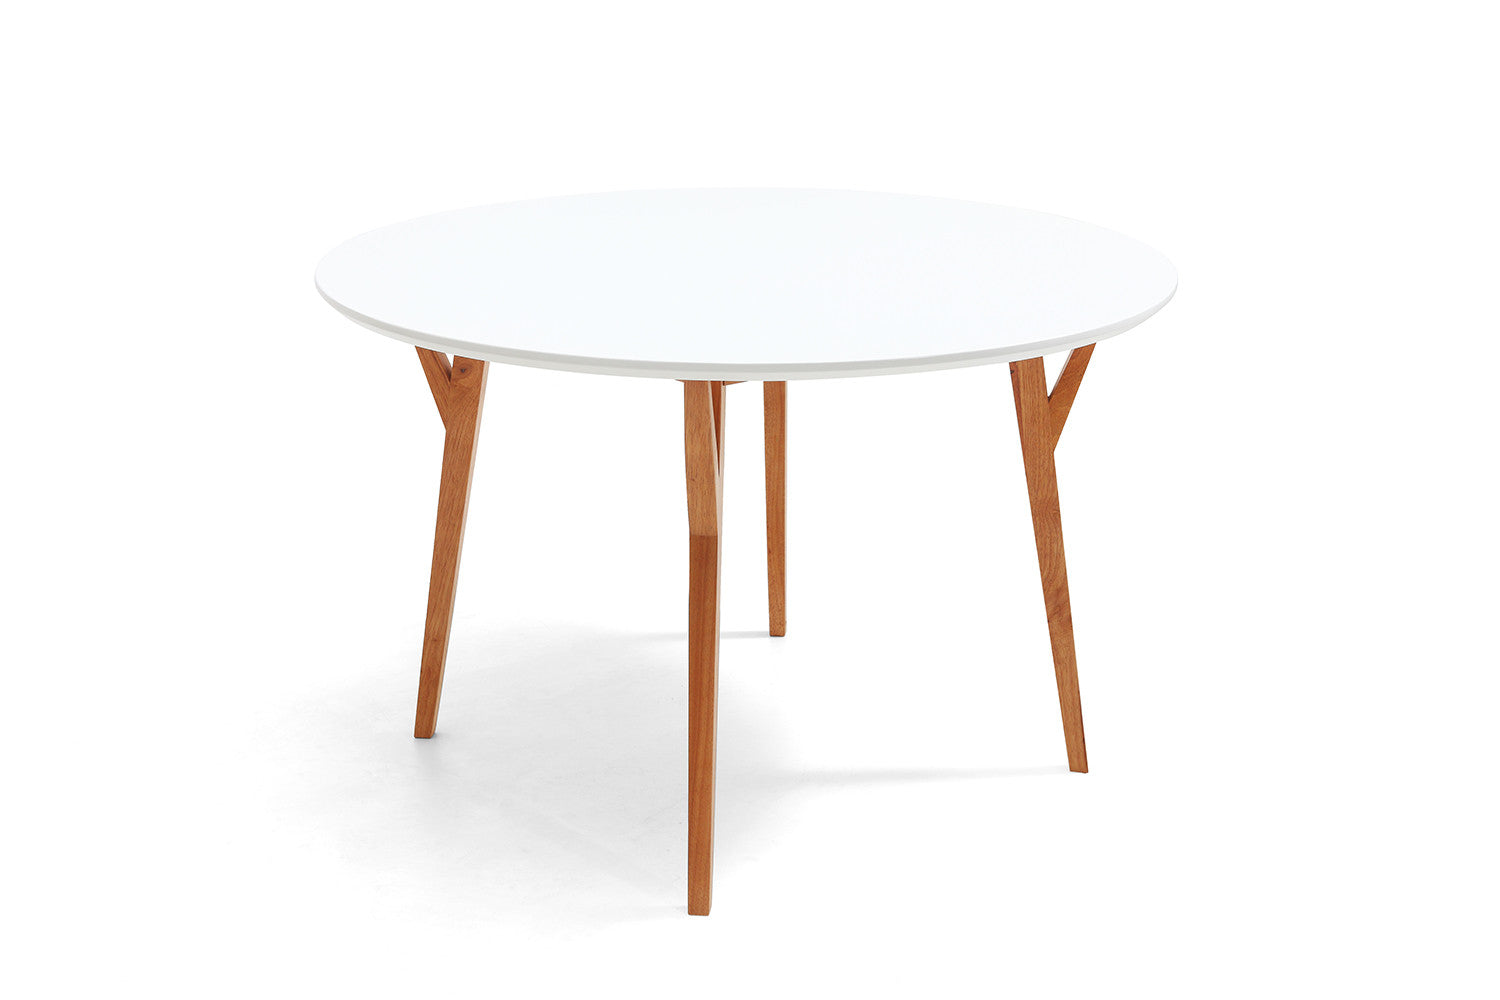 Table Salle À Manger Bois - Table de salleà manger ronde design scandinave Moesa Dewarens